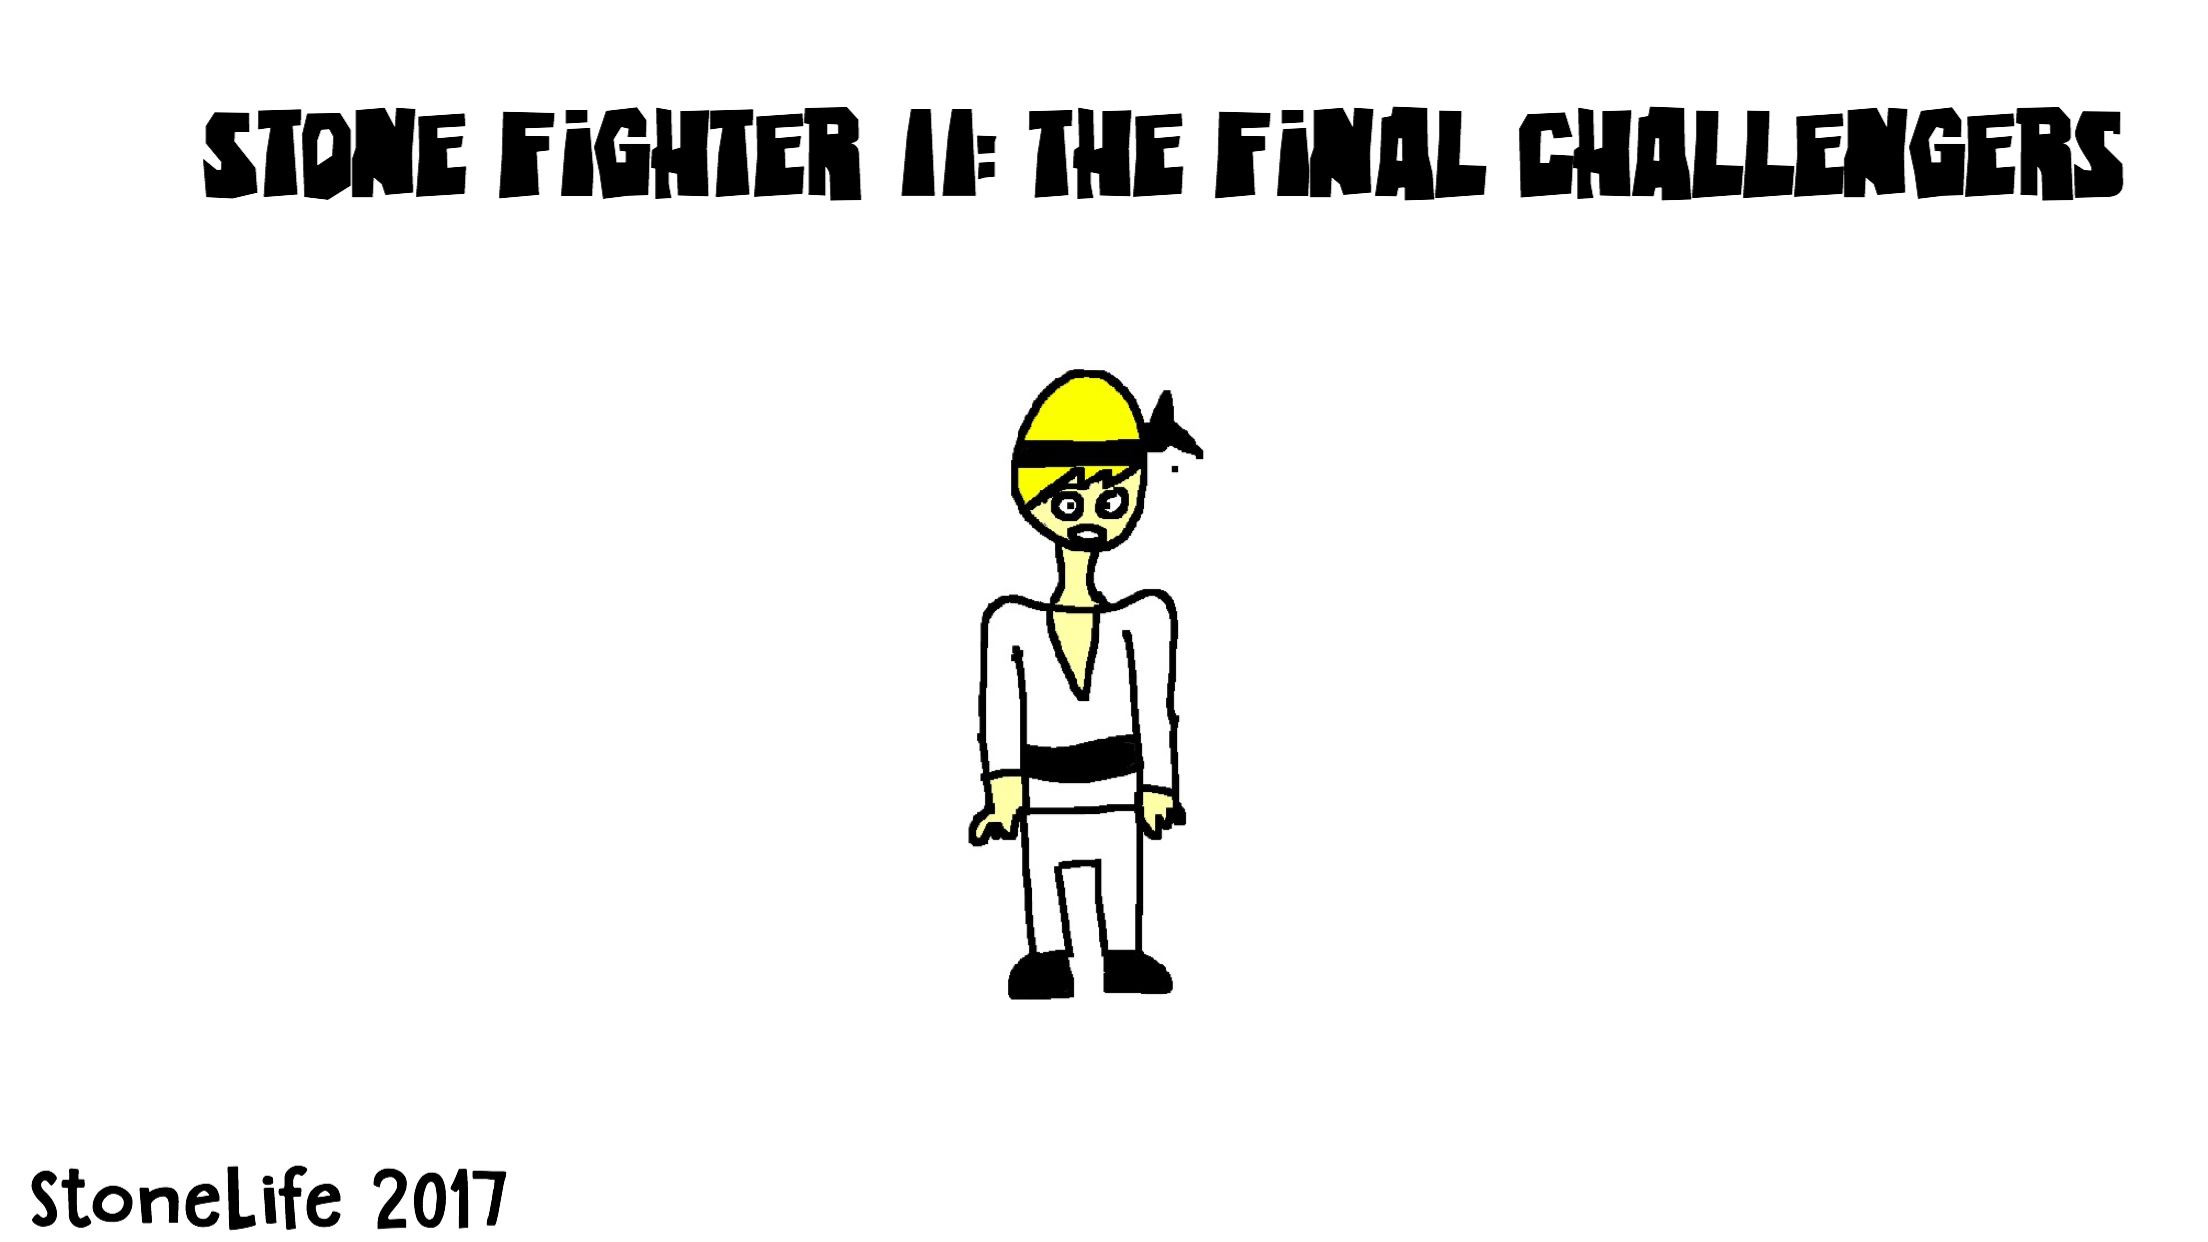 Stone Fighter II: The Final Challengers